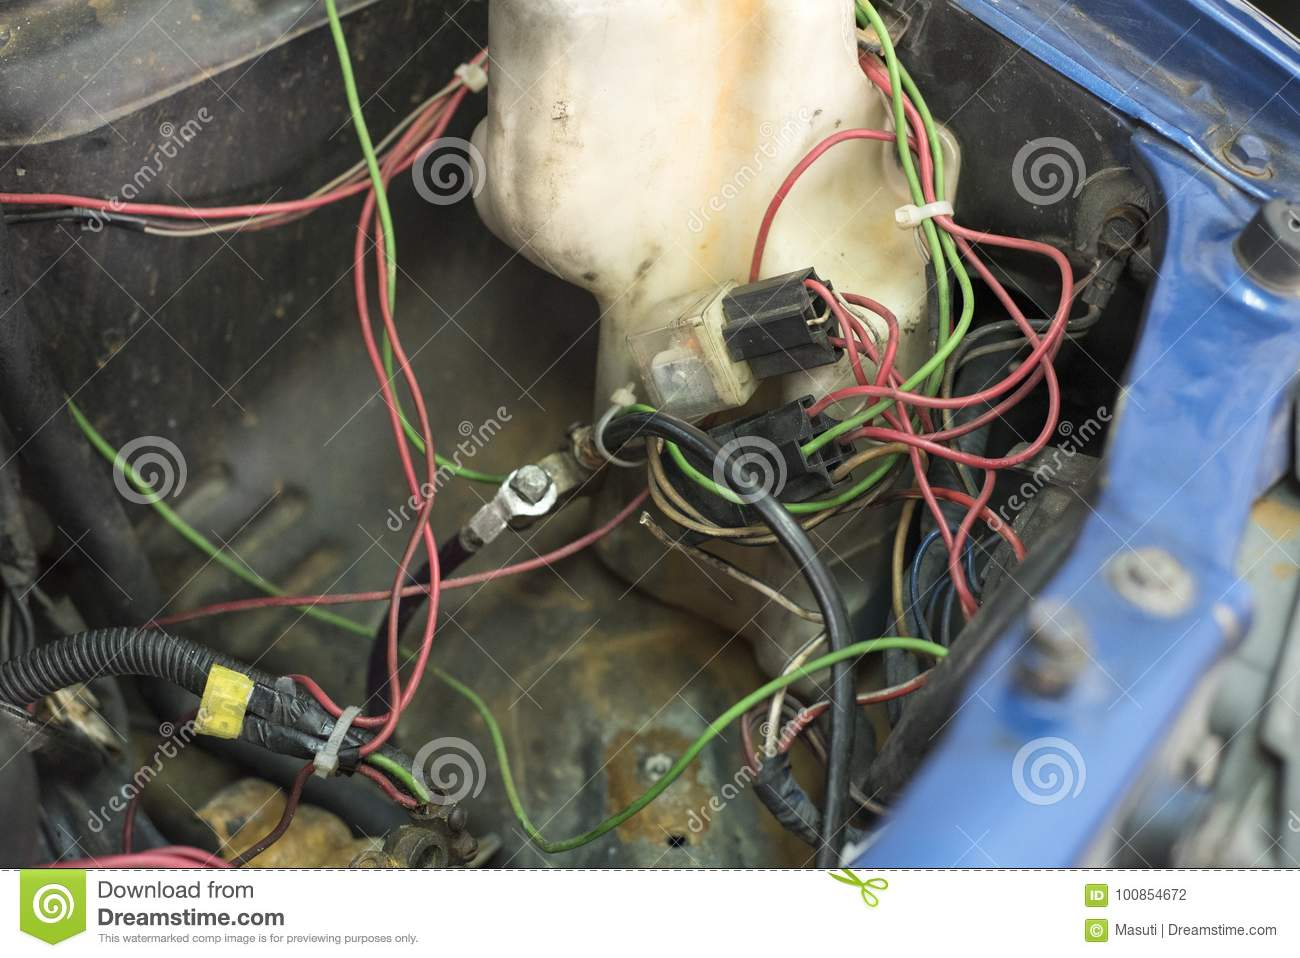 Messy Car Wiring Stock Photo Image Of Electric Battery 100854672 Electrical